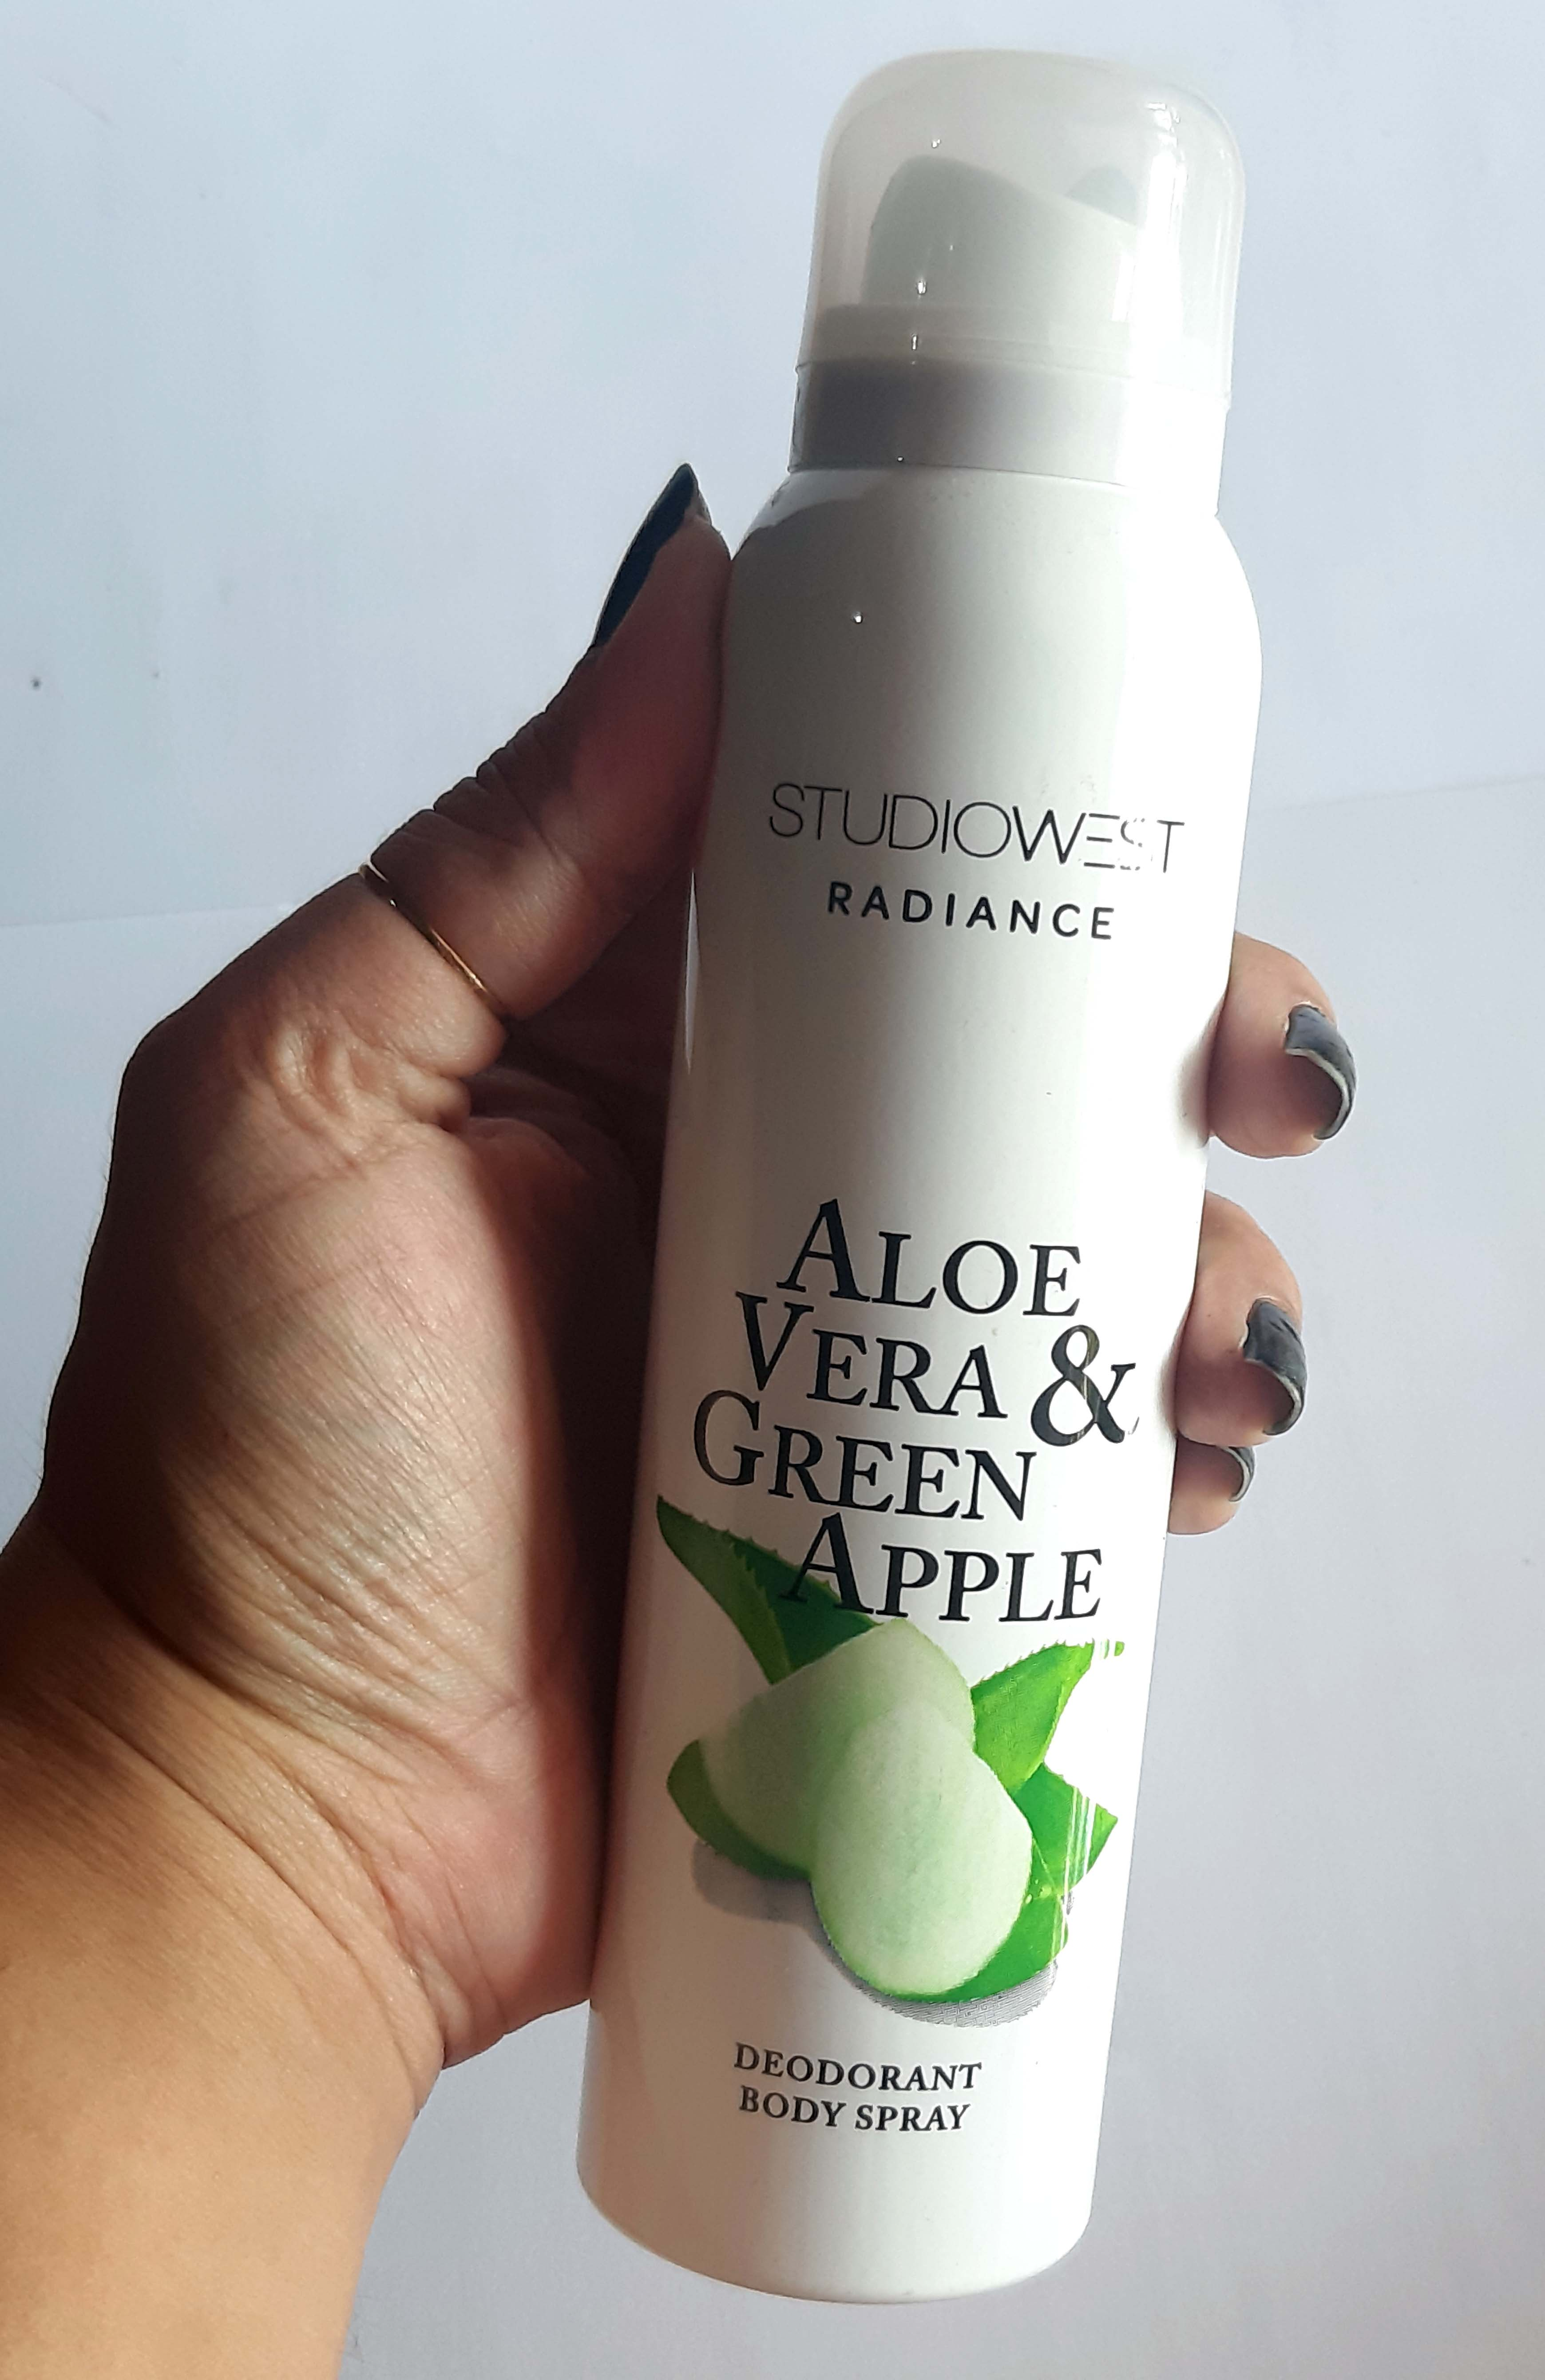 STUDIOWEST RADIANCE Aloe Vera & Green Apple Deodorant Body Spray